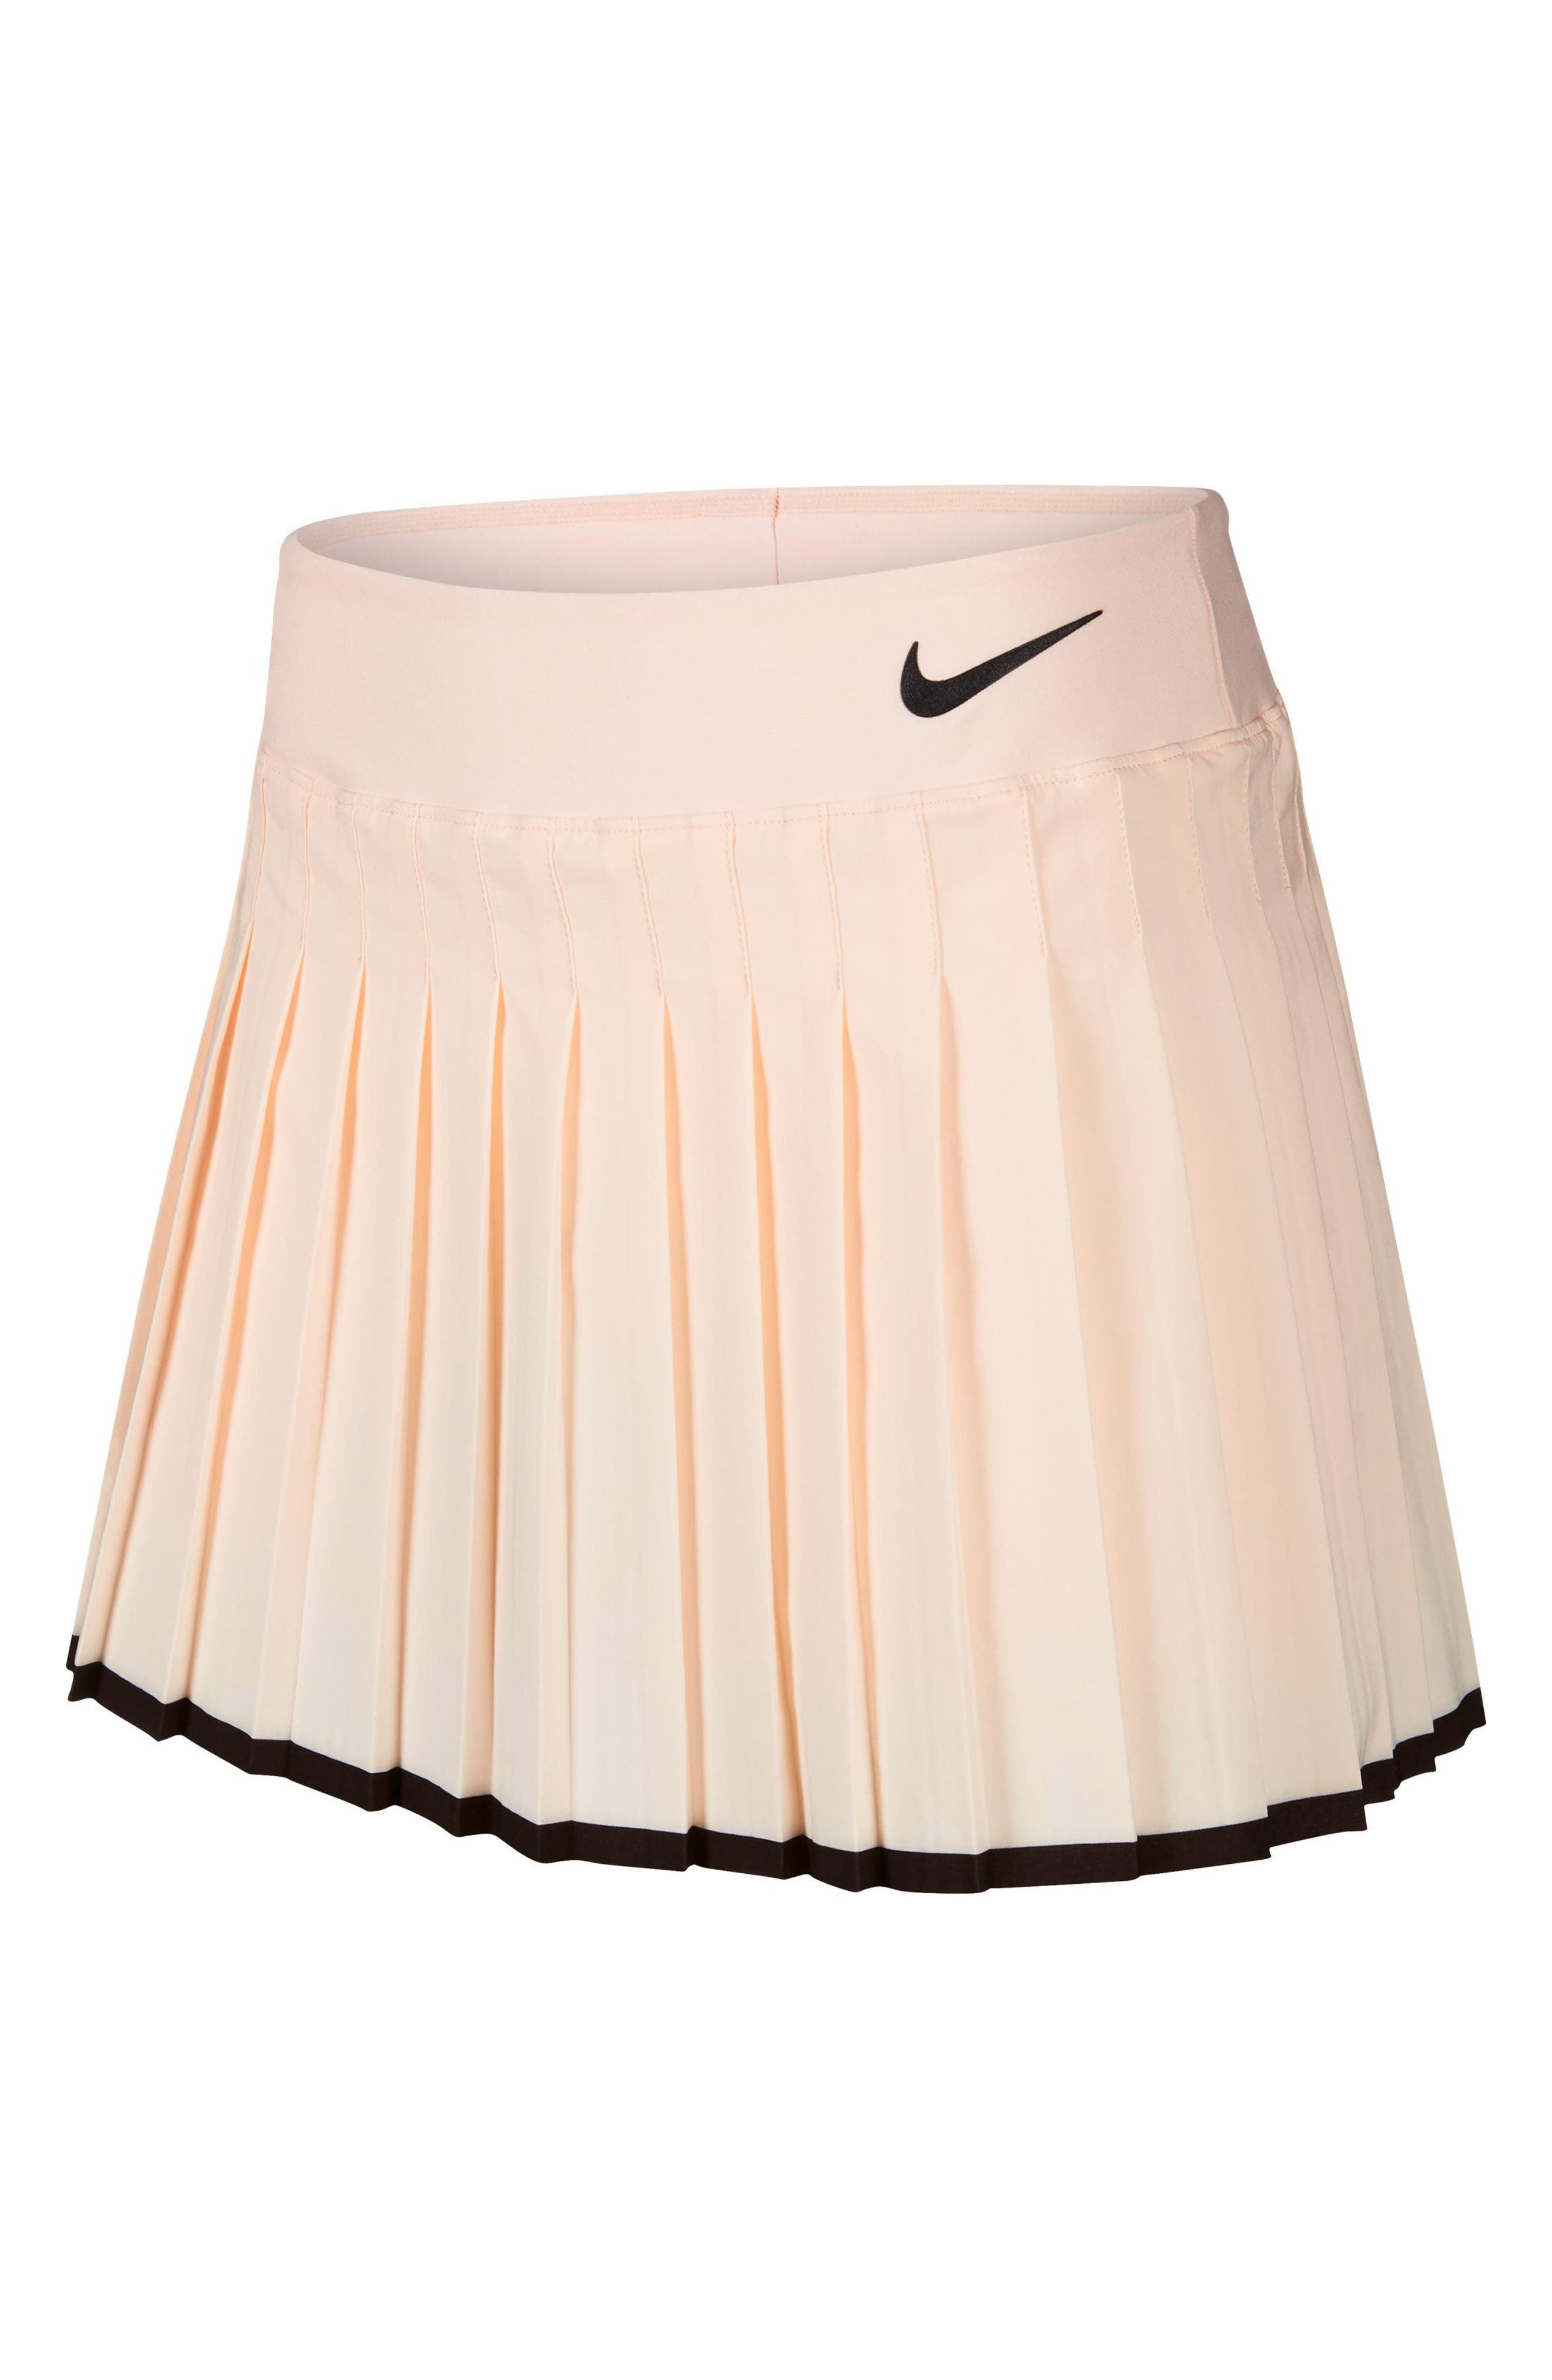 Women's Court Victory Tennis Skirt,                             Alternate thumbnail 4, color,                             959